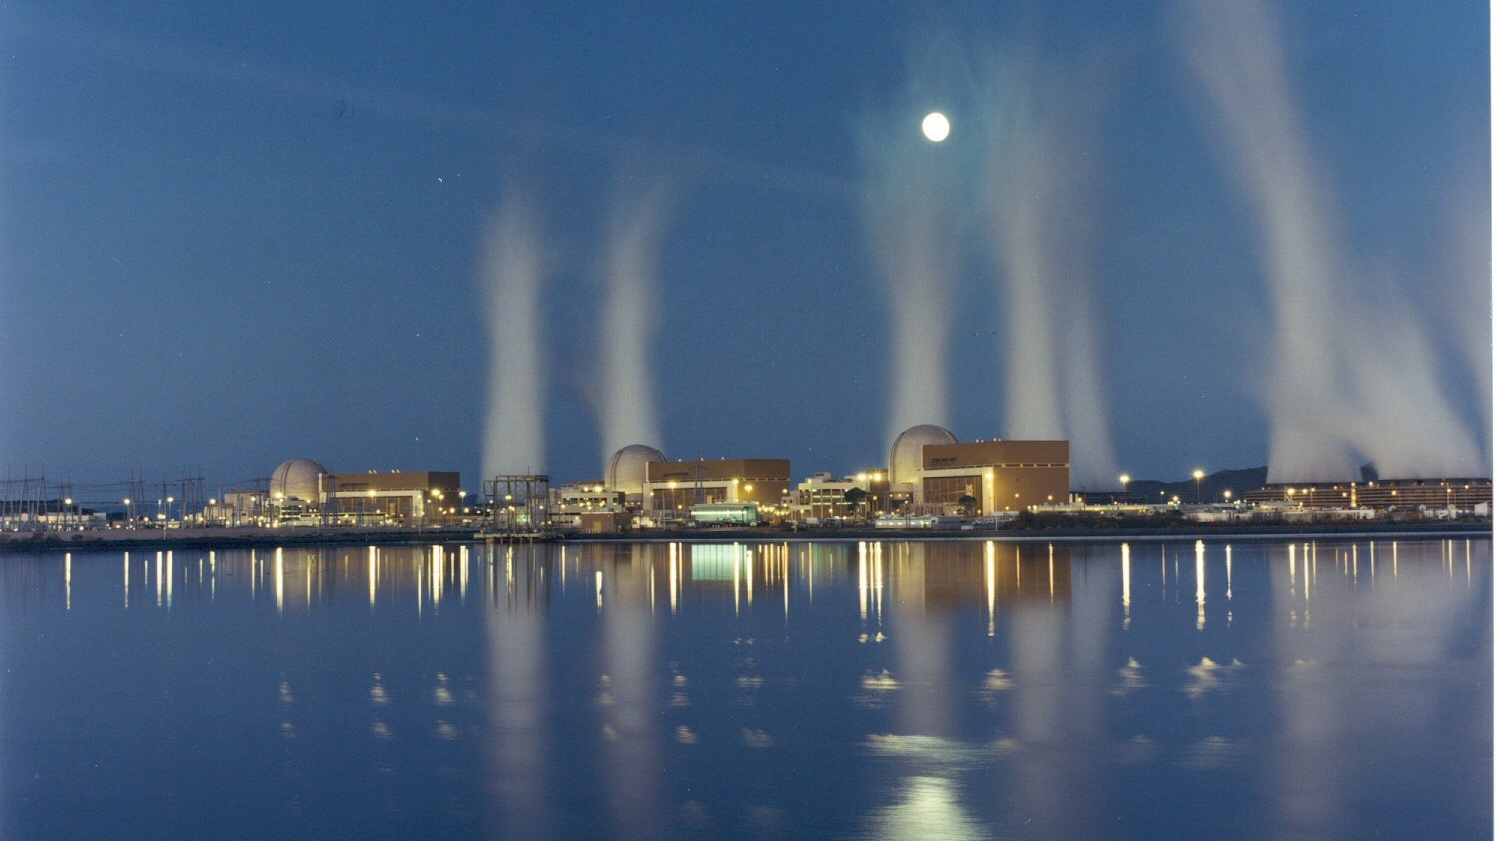 Palo Verde Nuclear Generating Station at Night